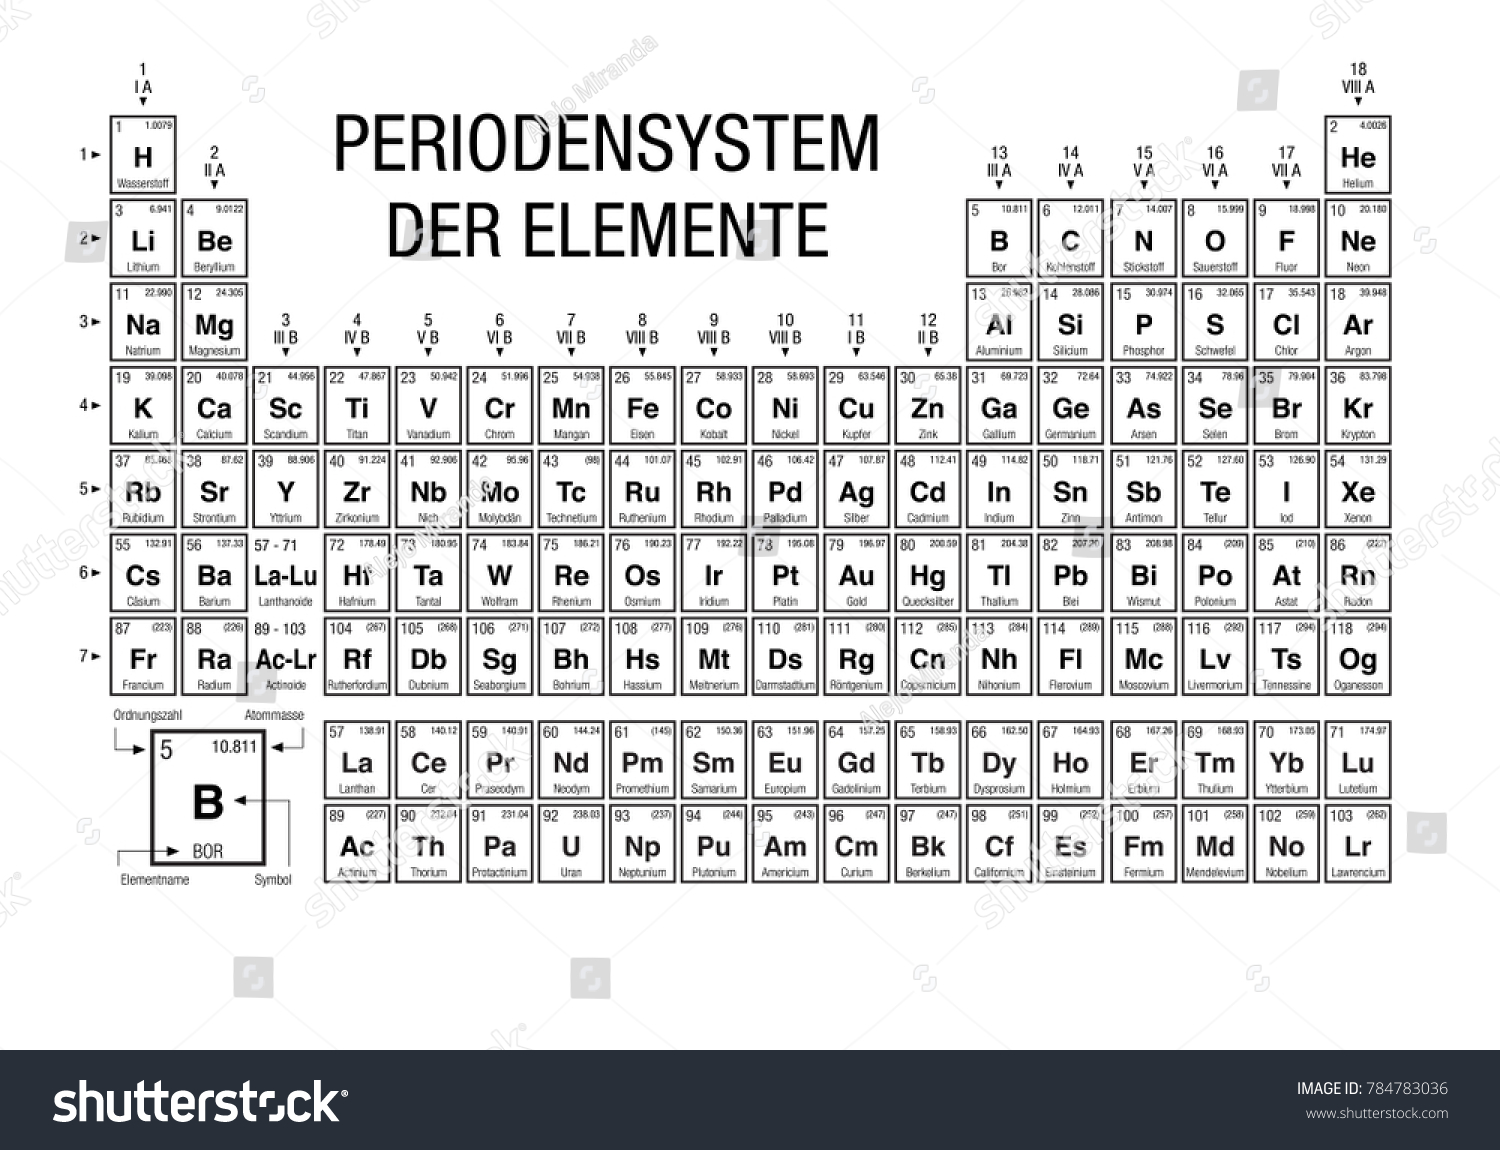 Periodensystem der elemente periodic table elements stock vector periodensystem der elemente periodic table elements stock vector 784783036 shutterstock urtaz